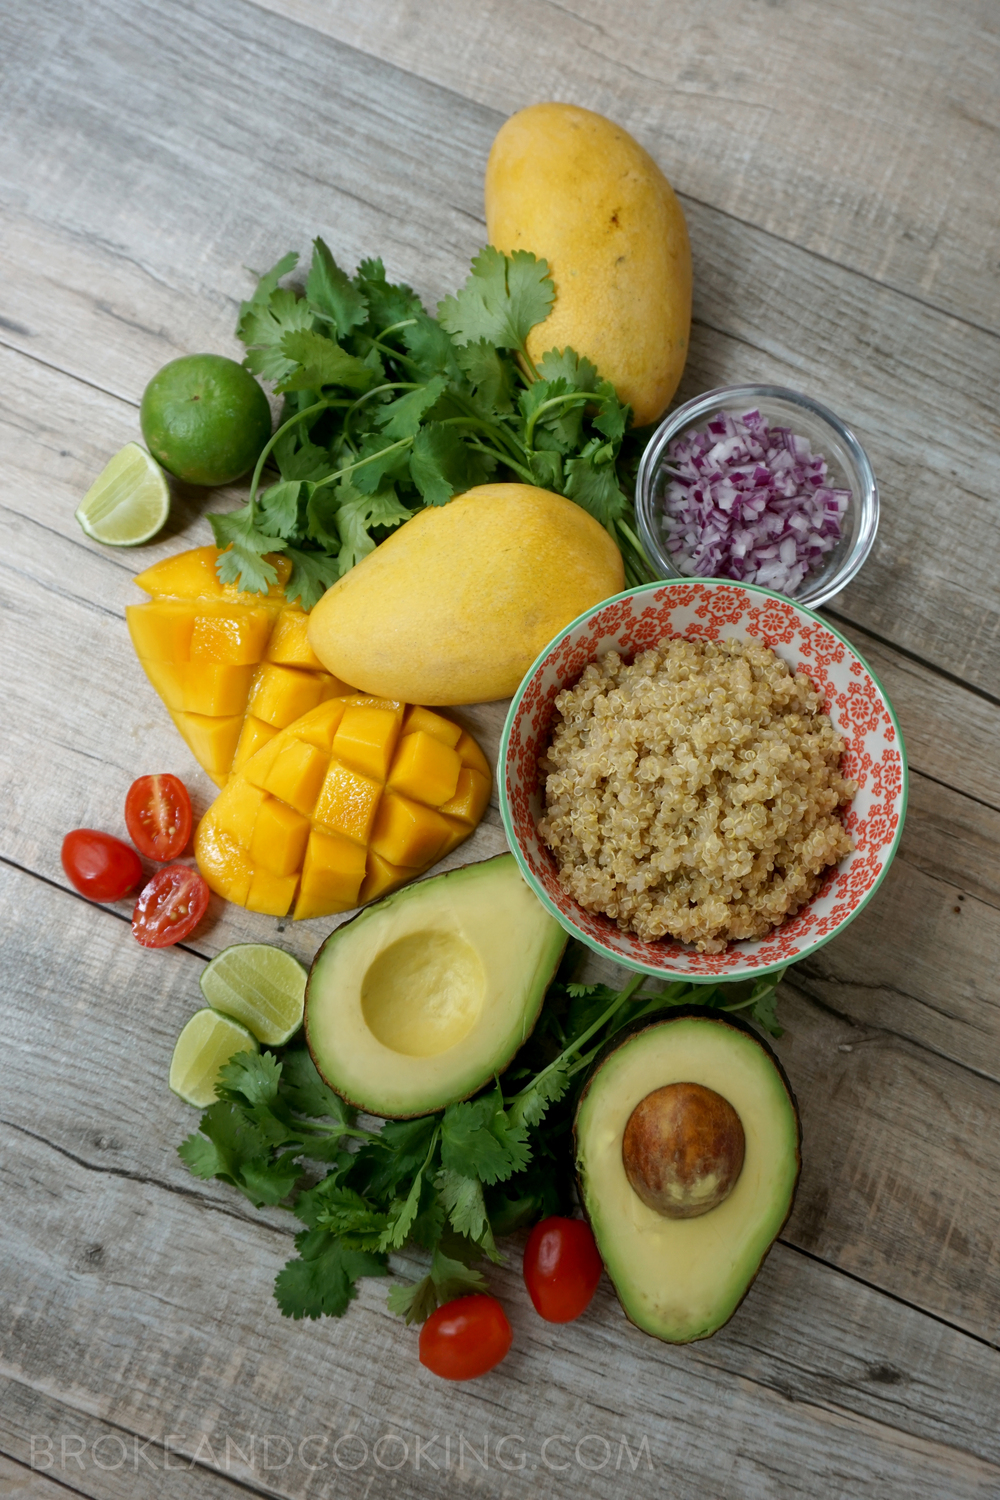 Seriously gorgeous ingredients - eating the rainbow is a really easy way to get a ton of nutrients!